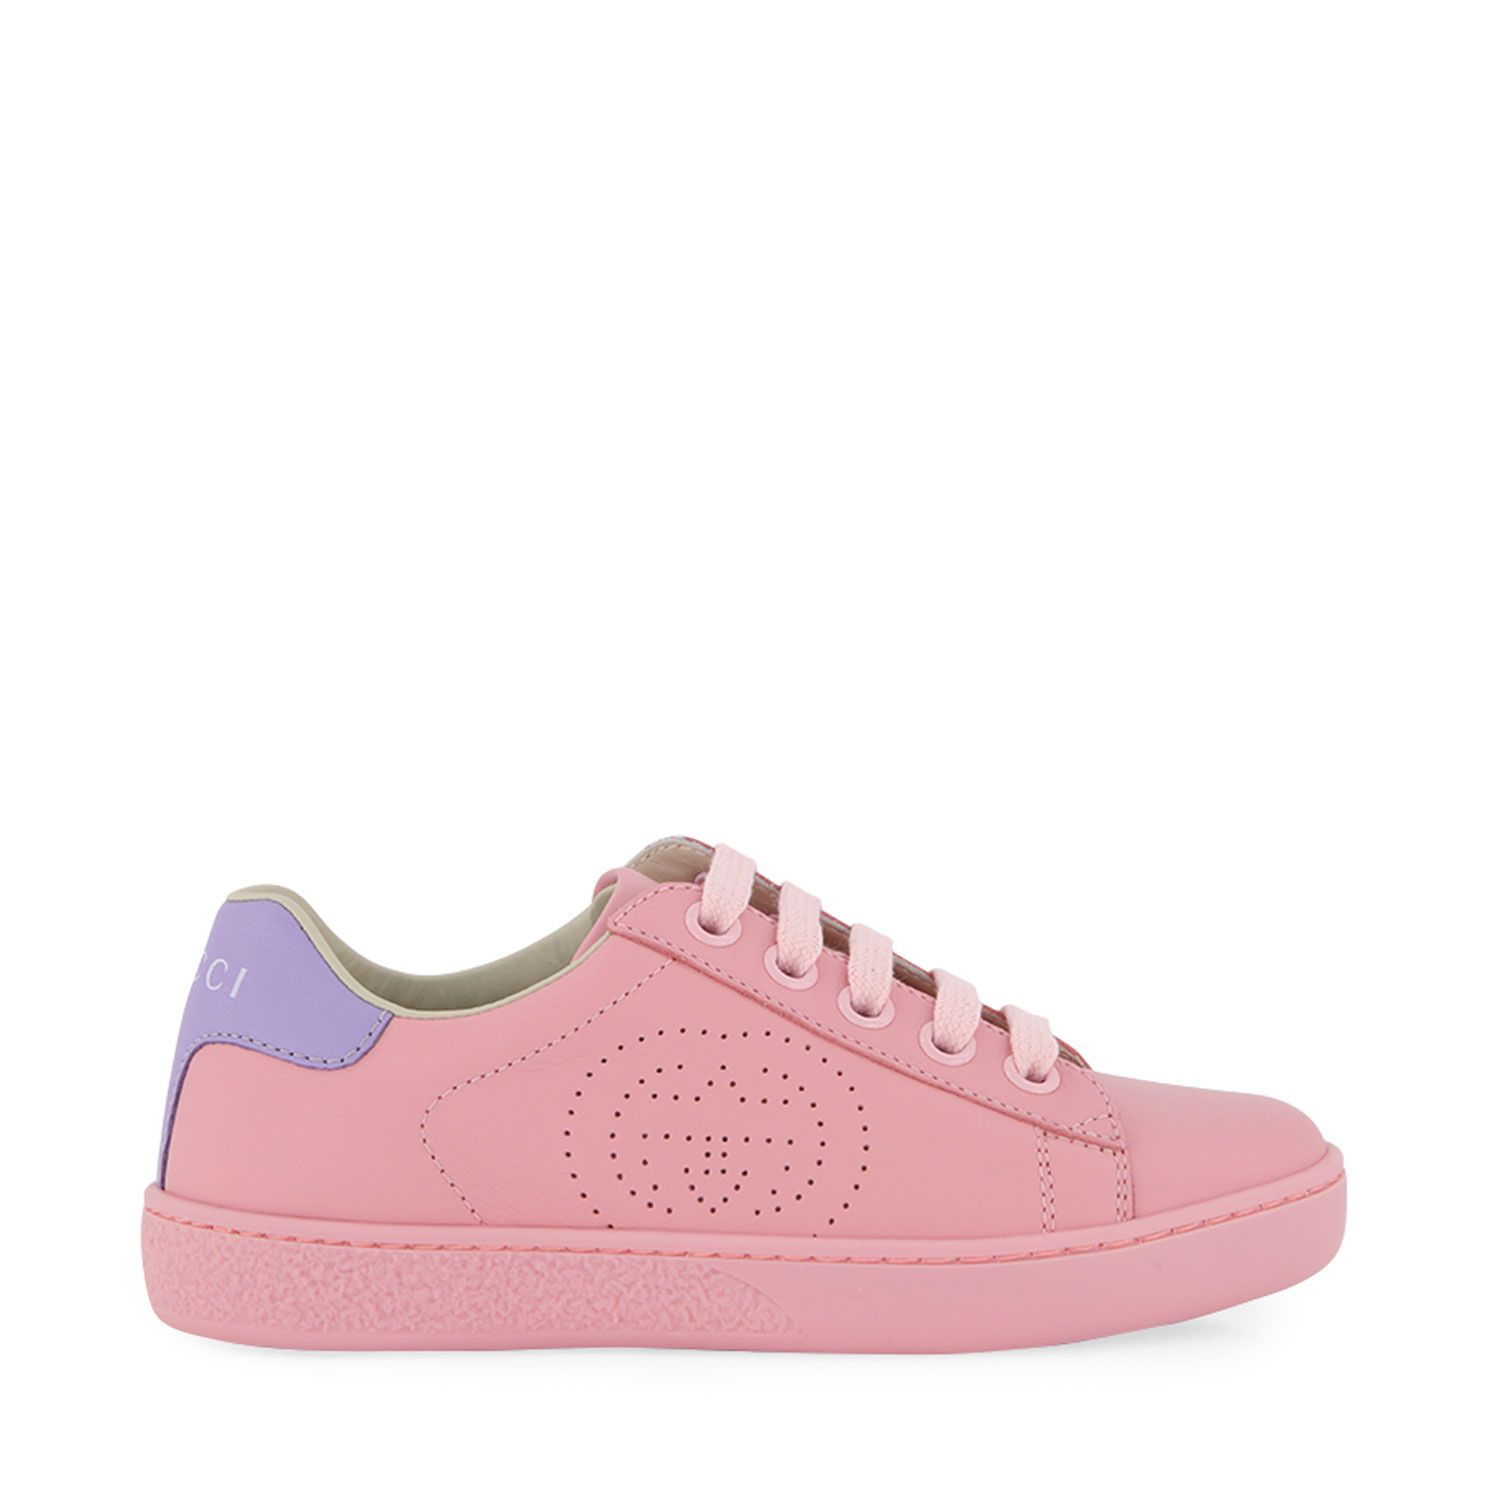 Picture of Gucci 626624 kids sneakers light pink